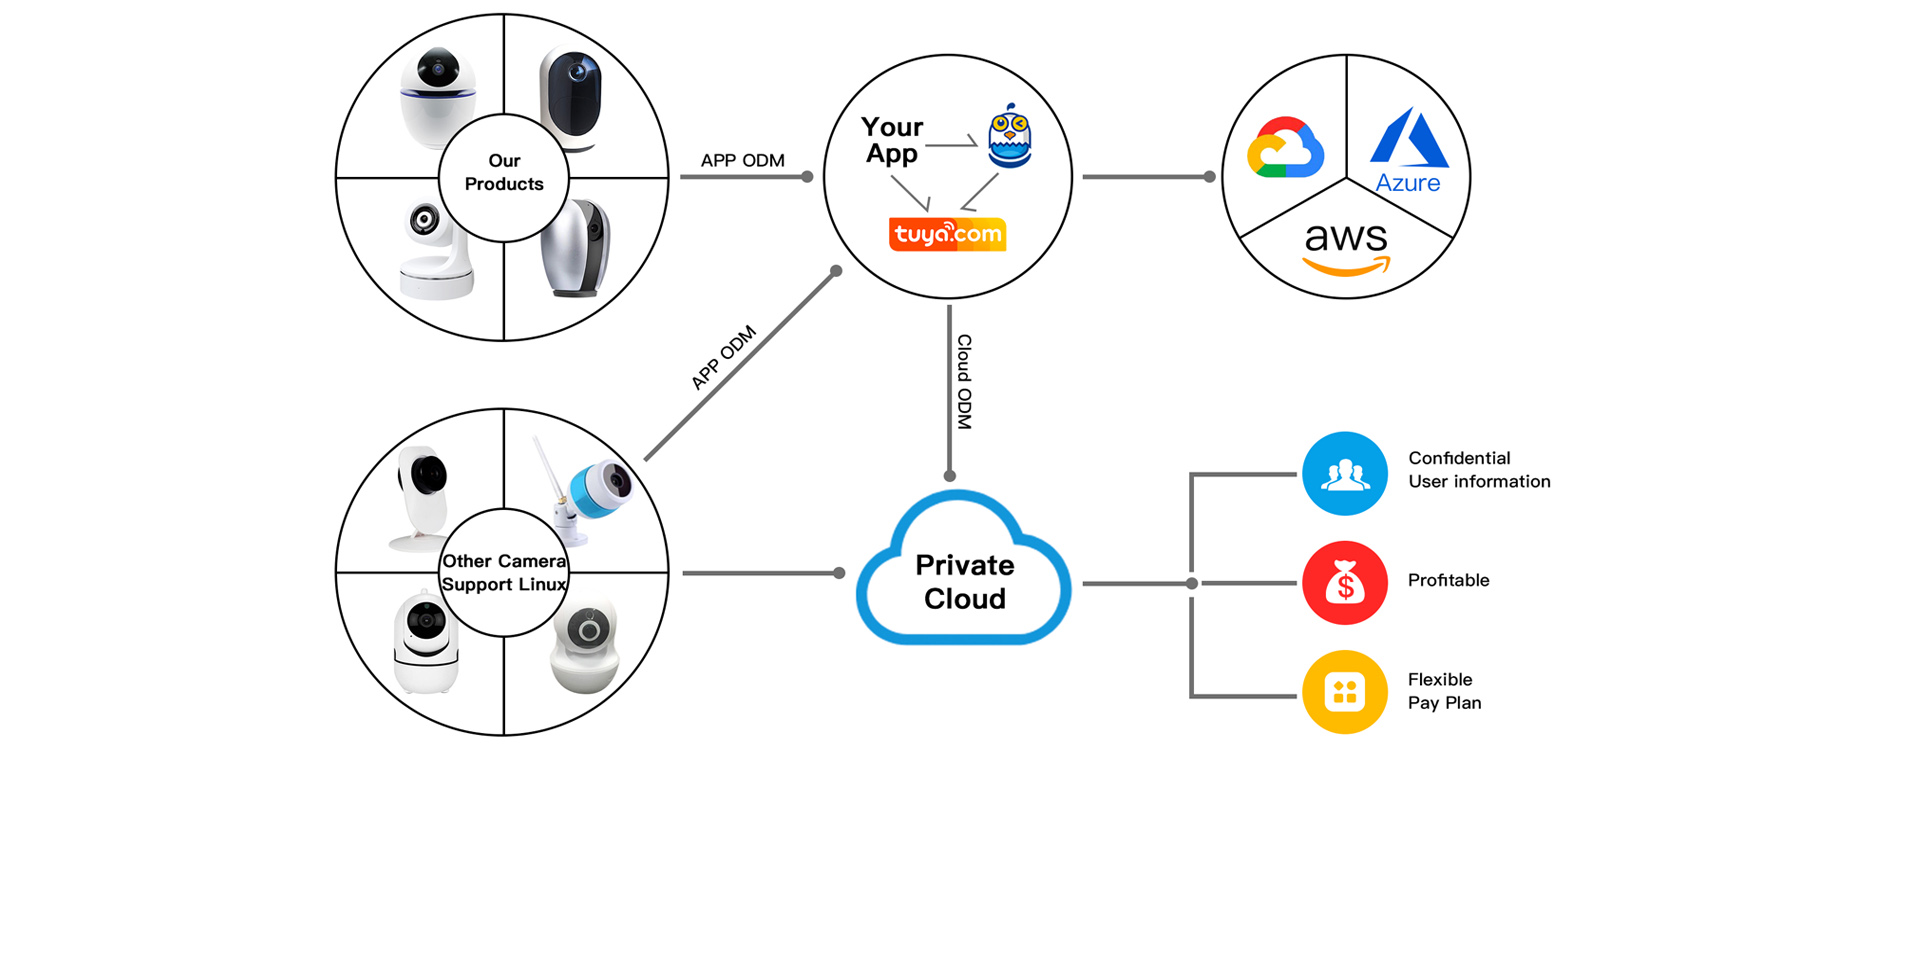 sdk-open-app-customized-cloud-service